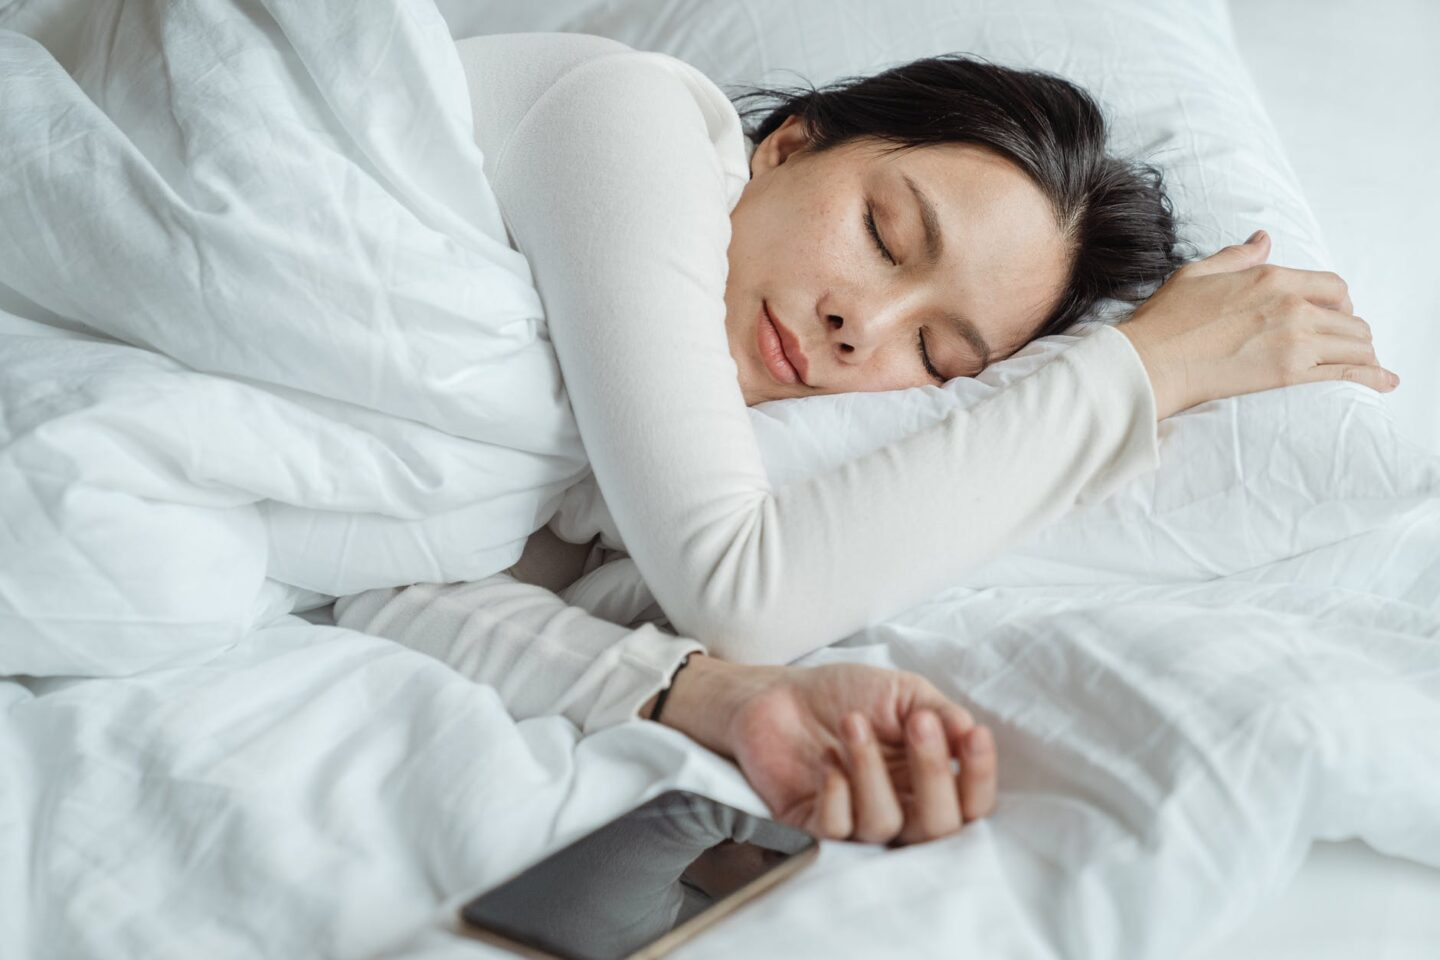 woman sleeping in bed poor mental health